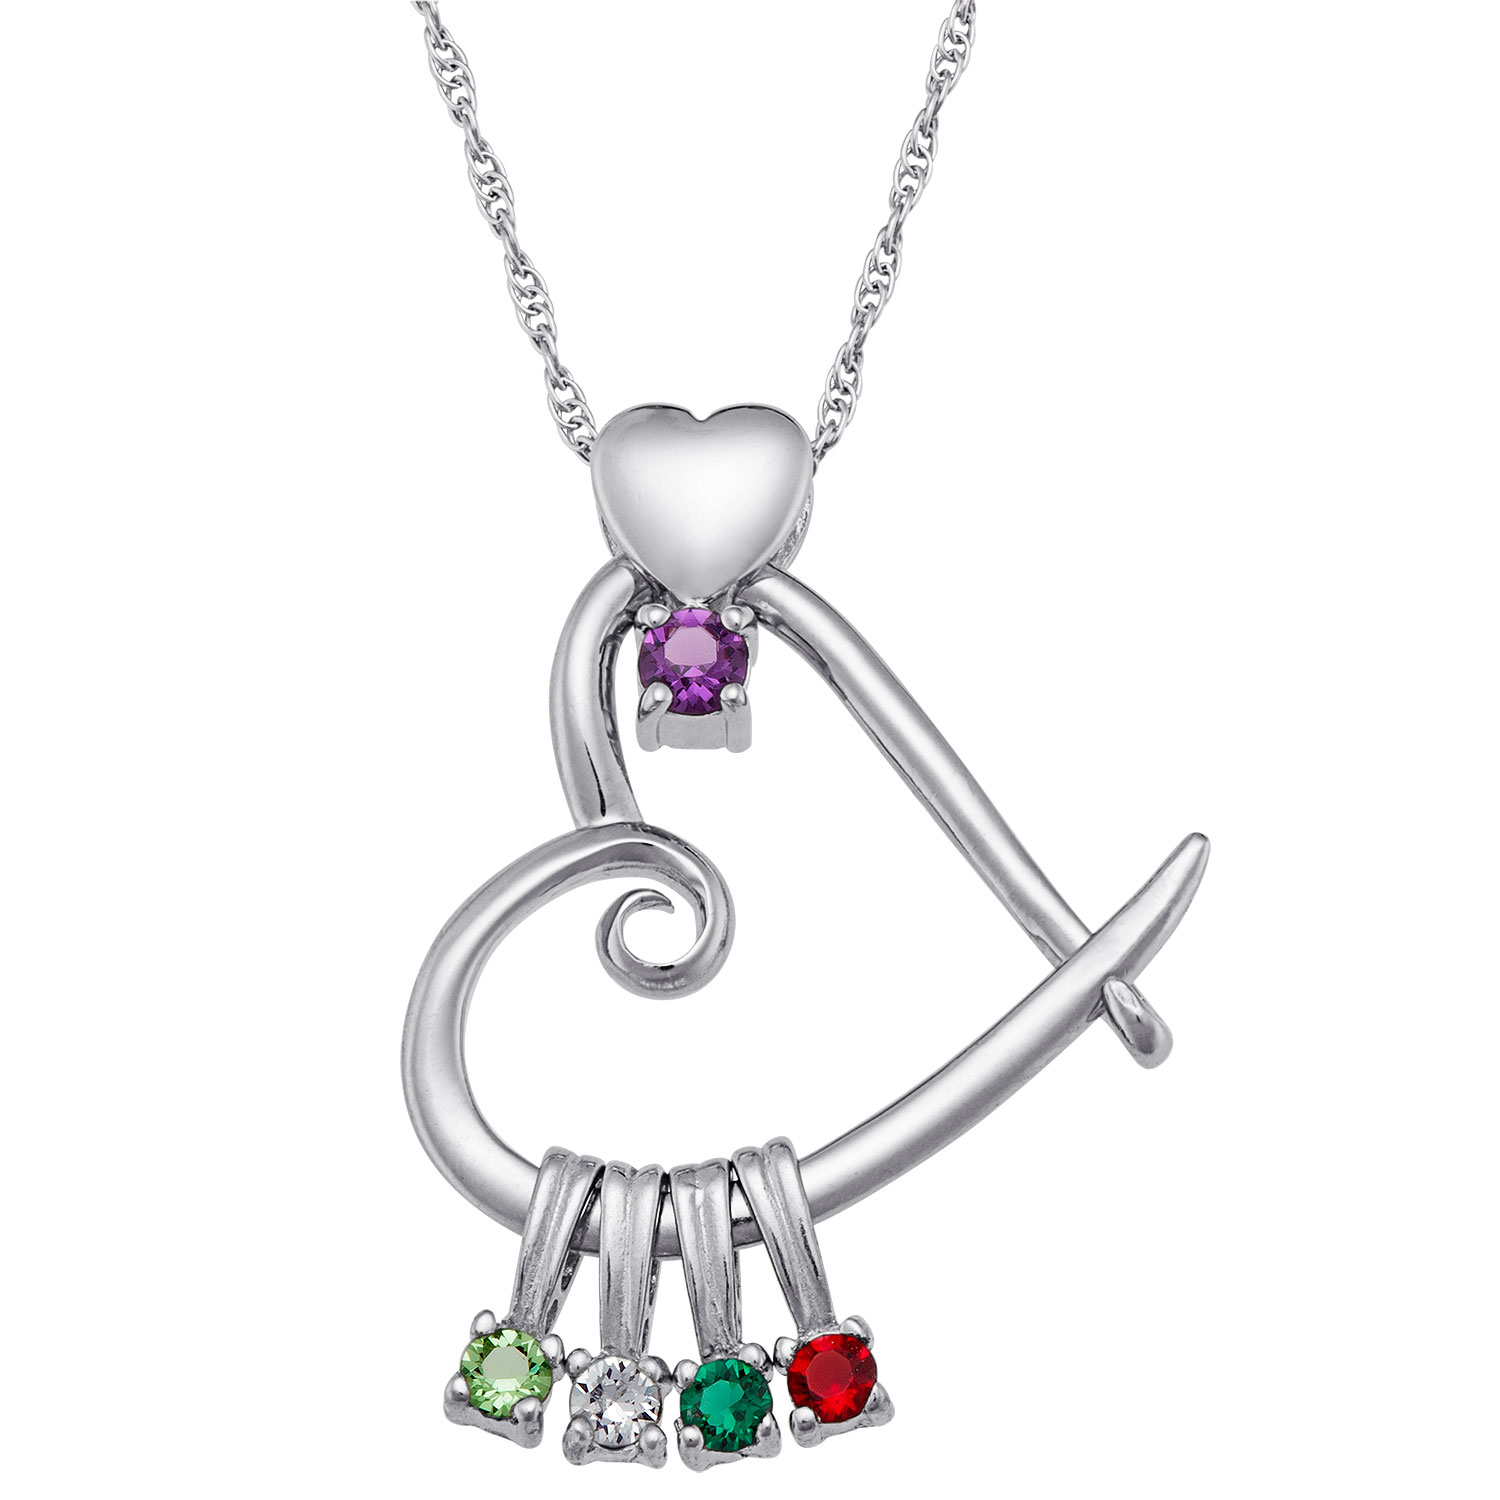 auren birthstone products pearl charm necklace june jewellery